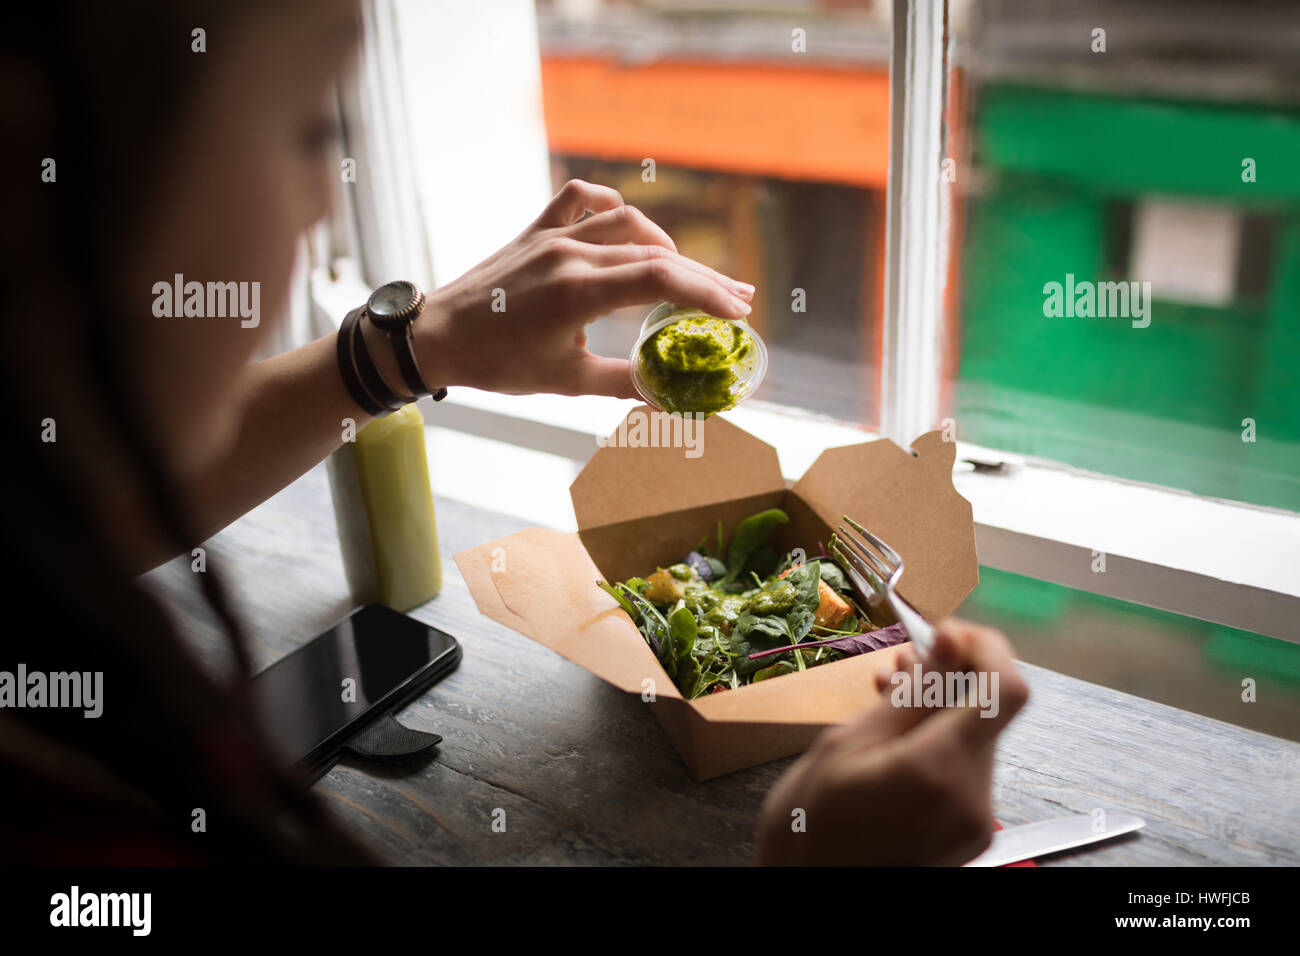 Woman pouring green sauce on a salad in café - Stock Image